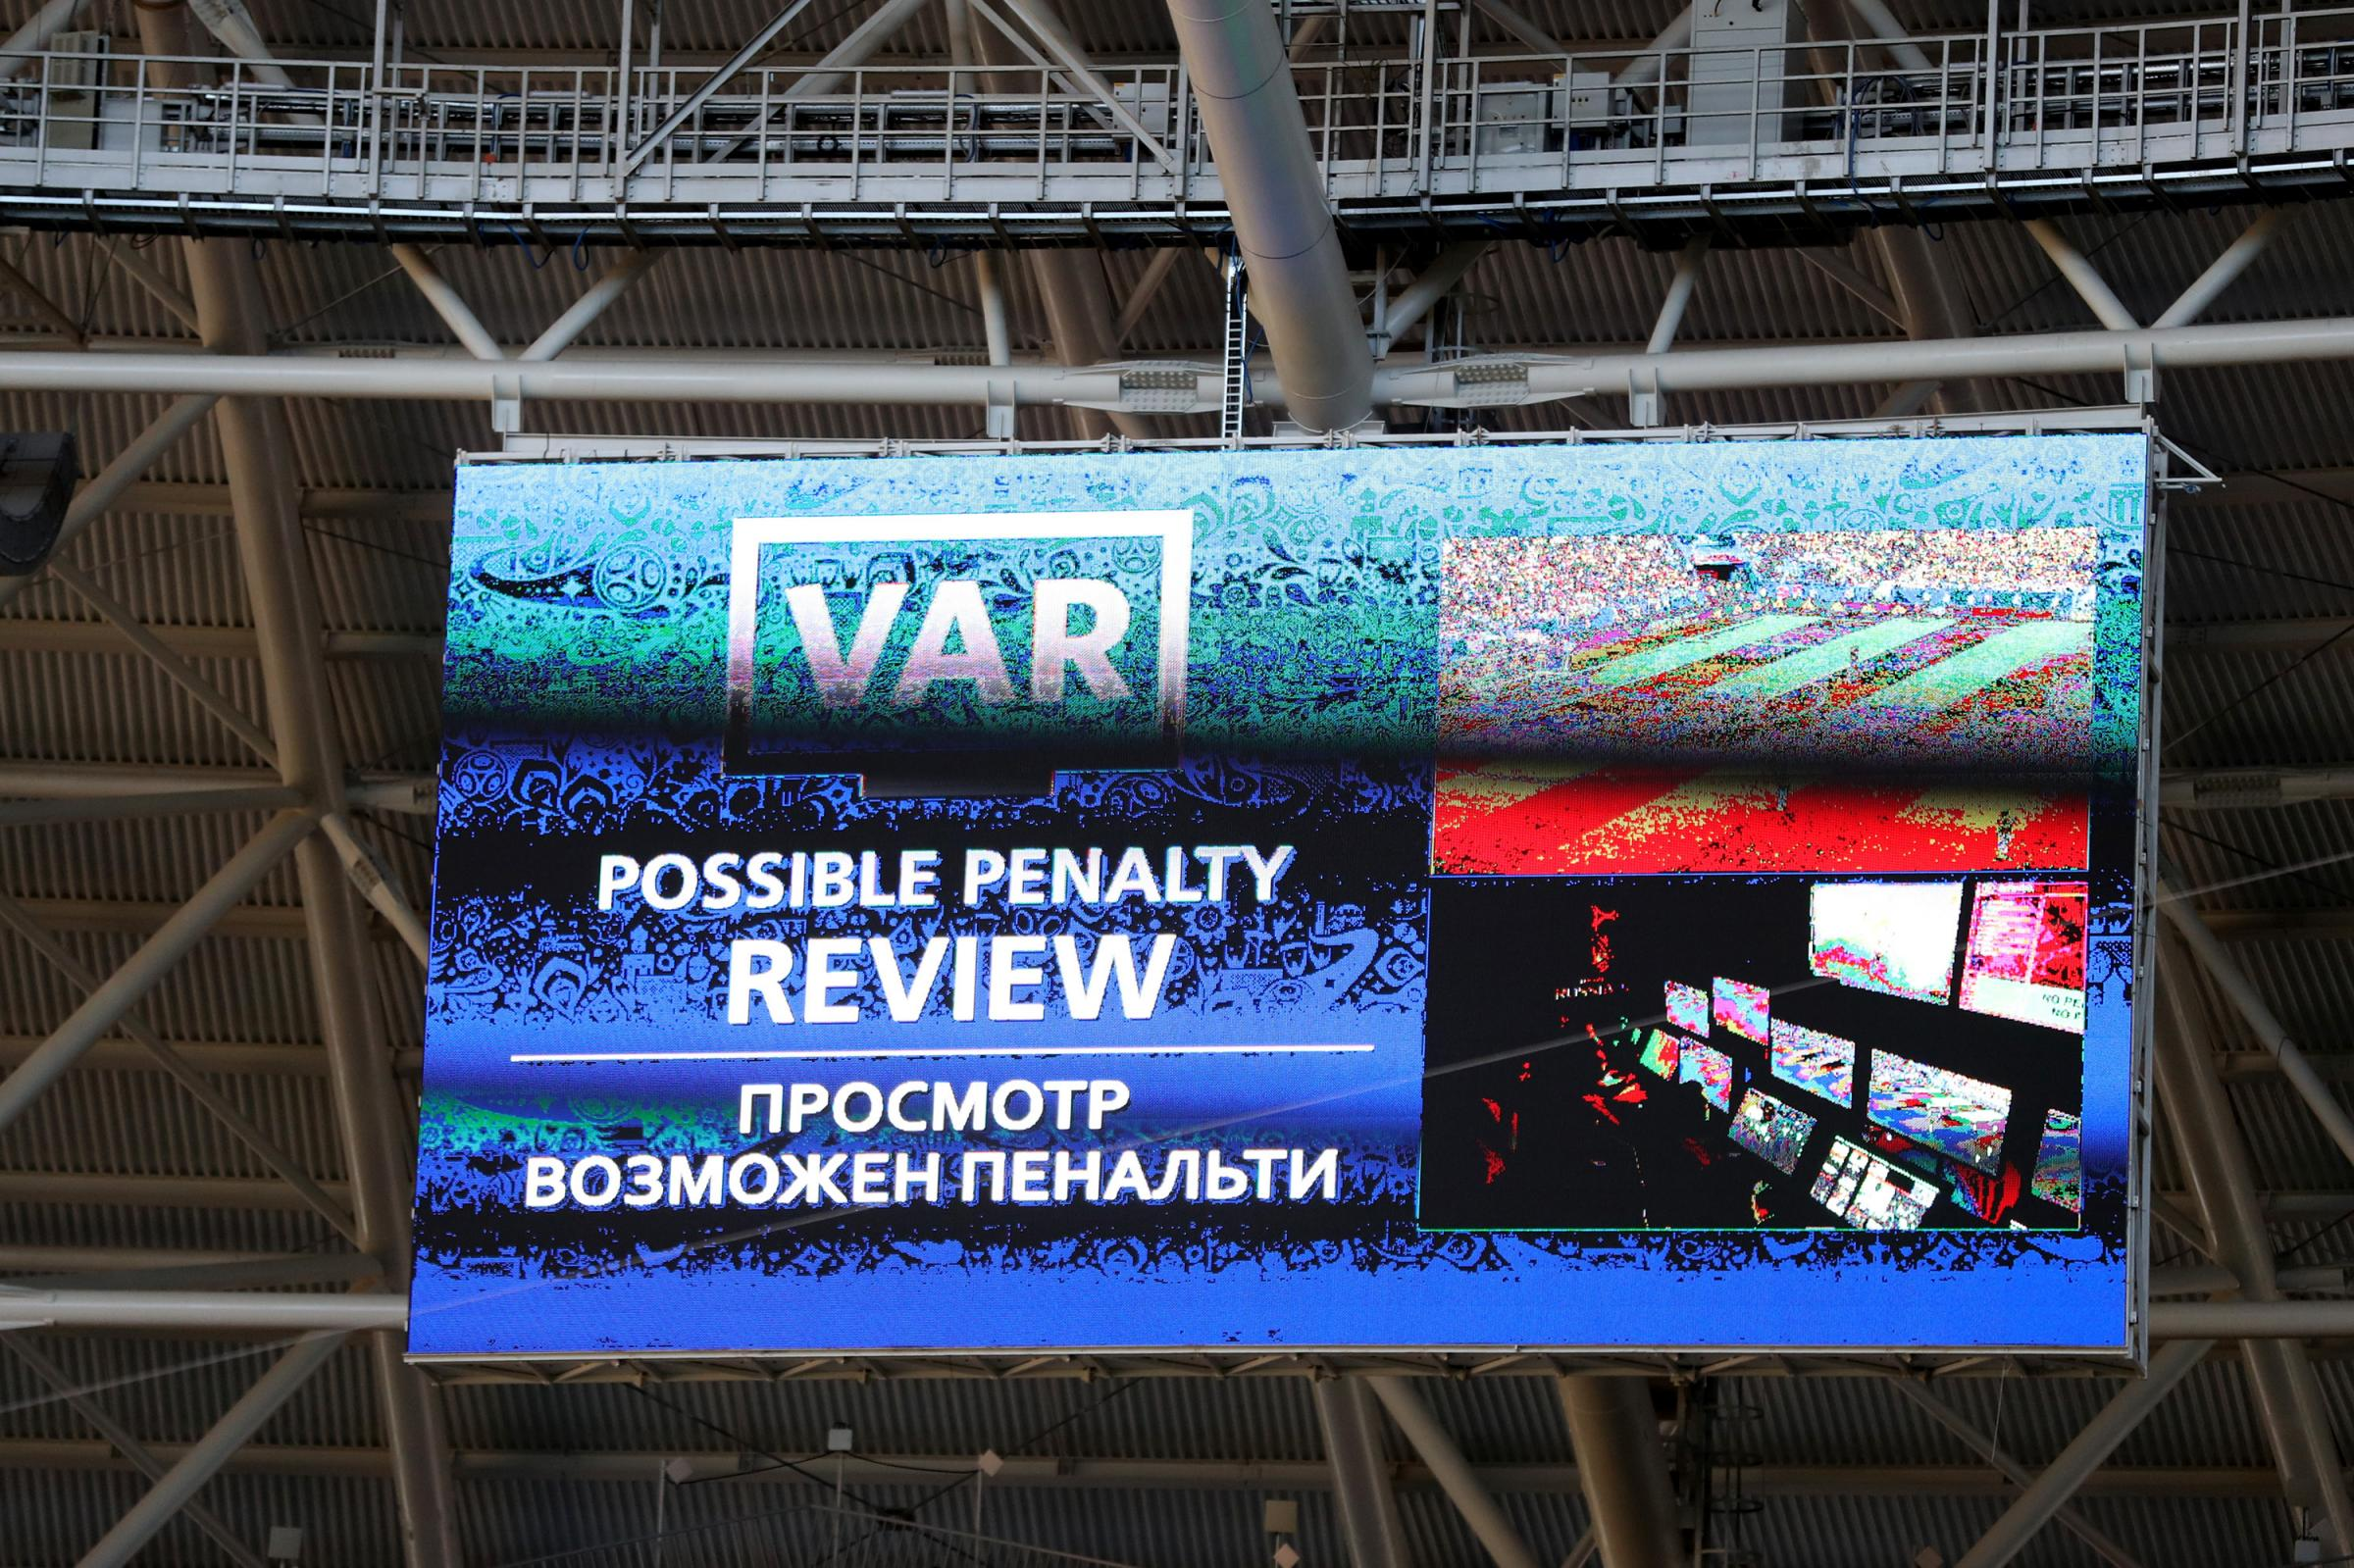 The big screen inside the Samara Arena informs fans a VAR review is under consideration during a Russia 2018 group match between Colombia and Senegal last month.